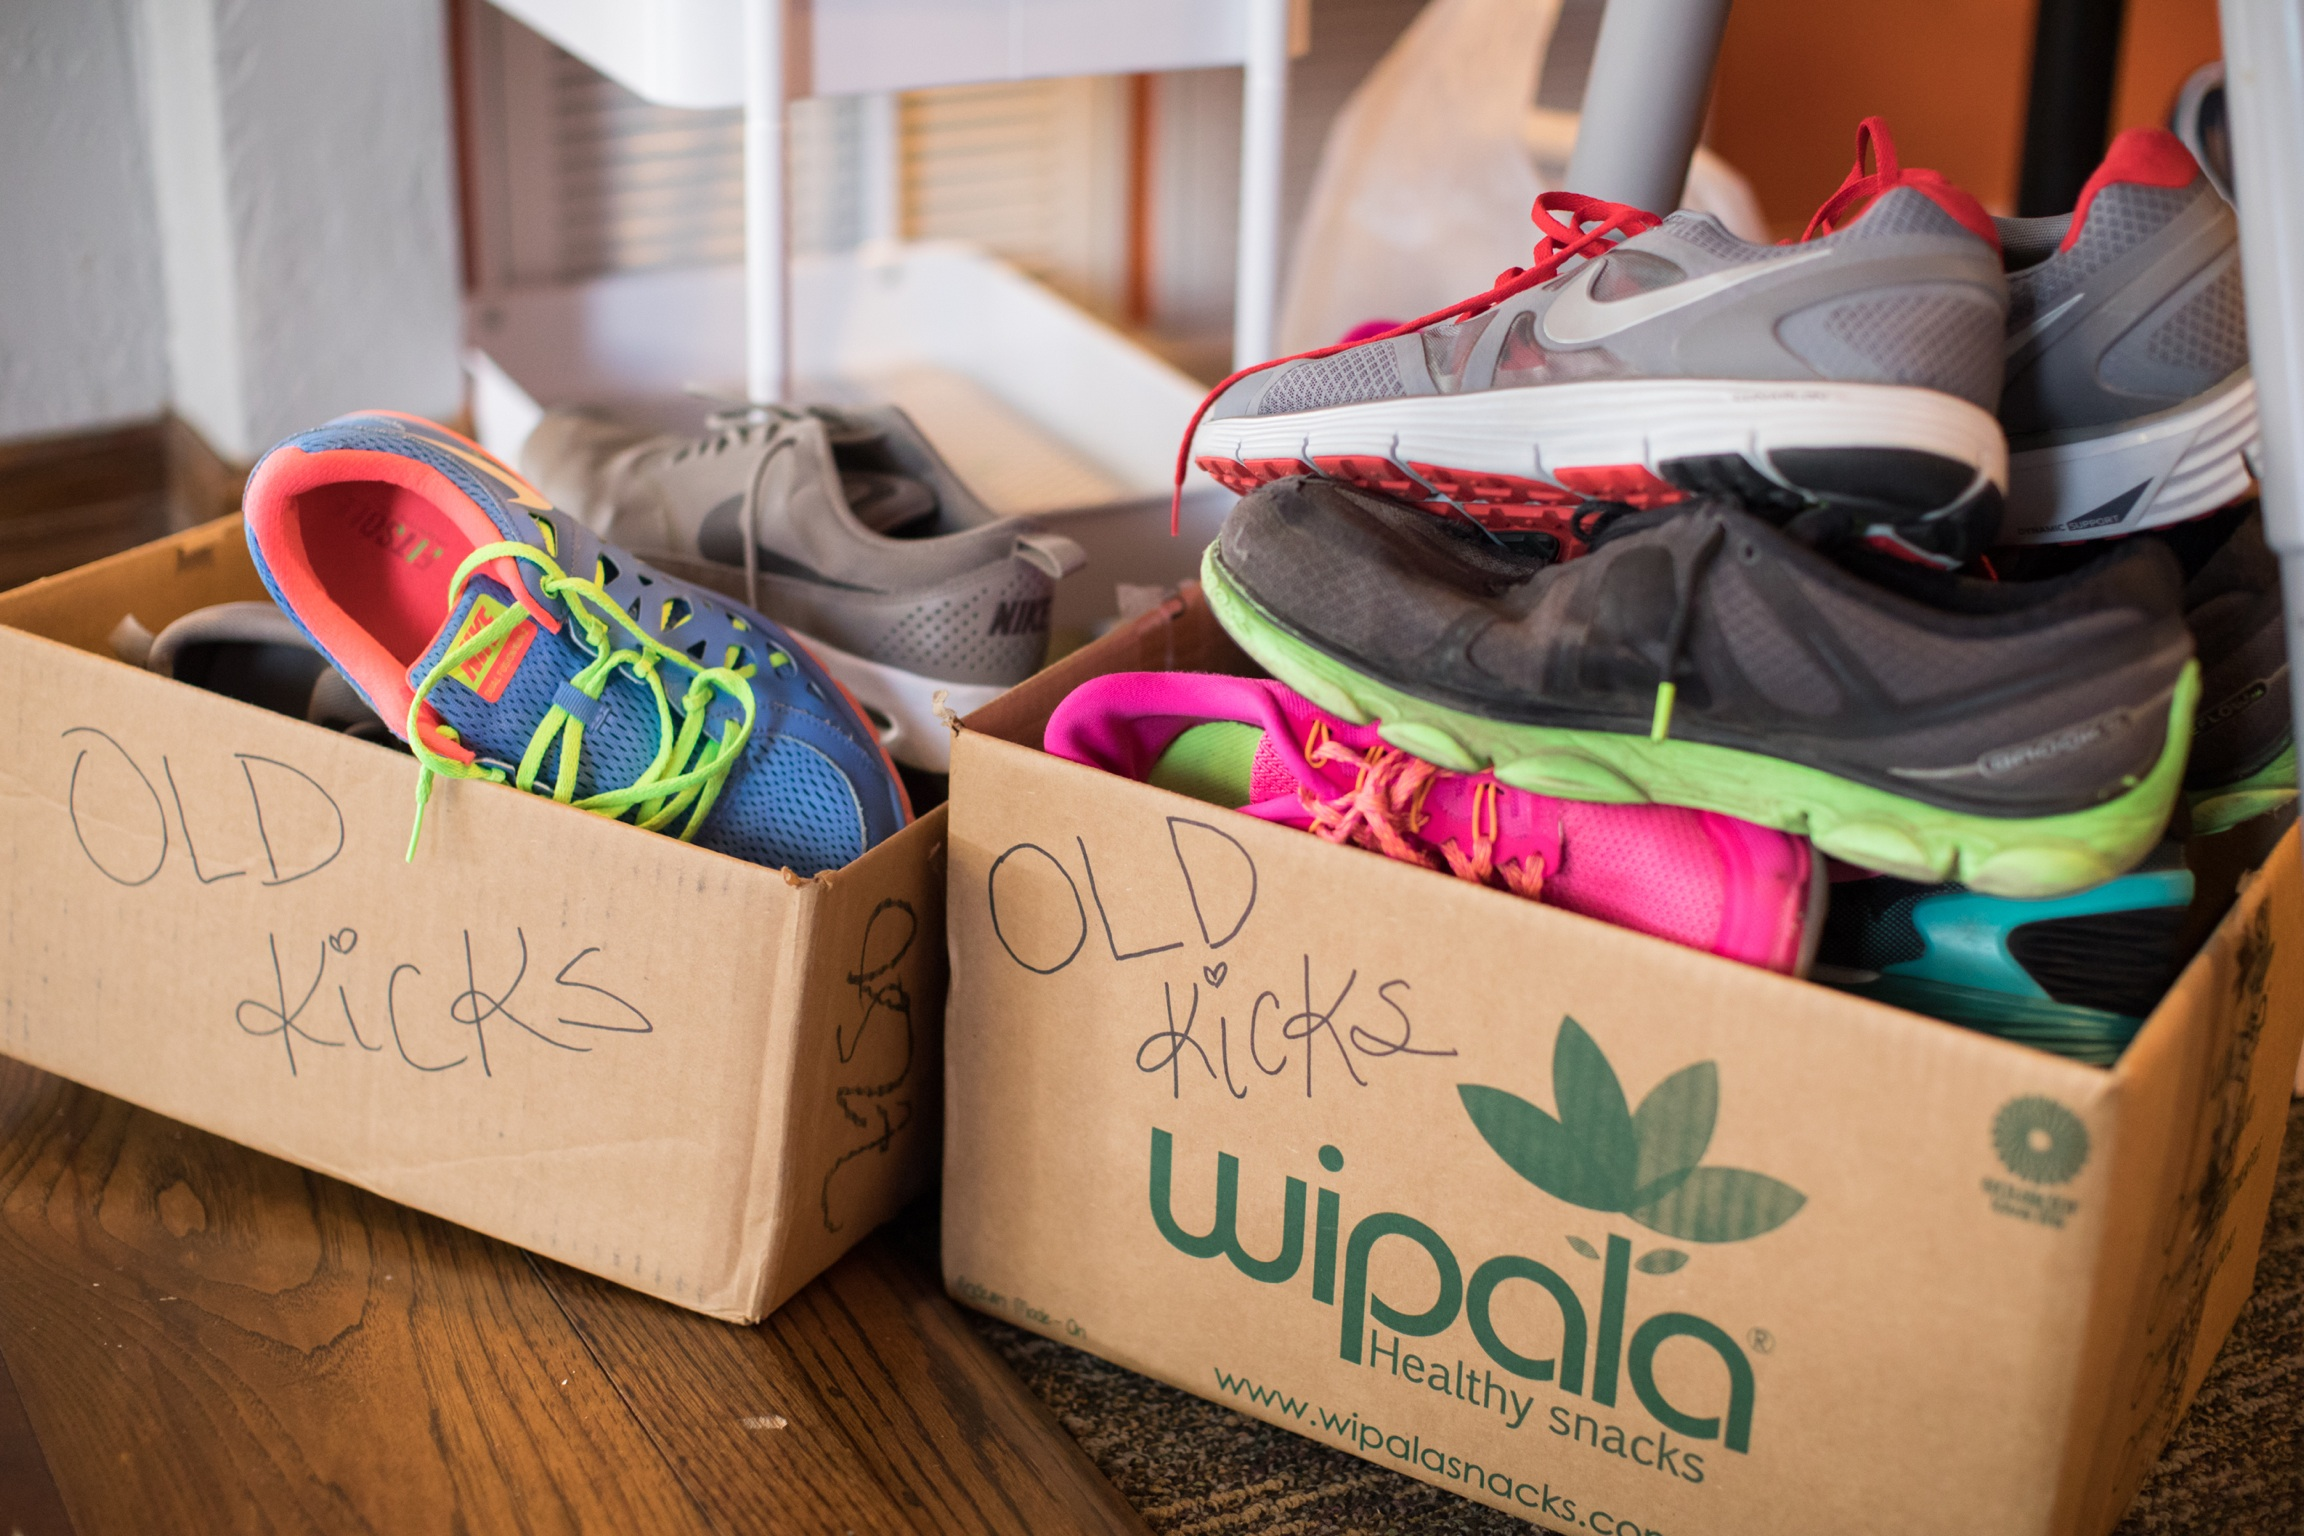 We donated 17 pairs of shoes, y'all!!!! Thank you! <3